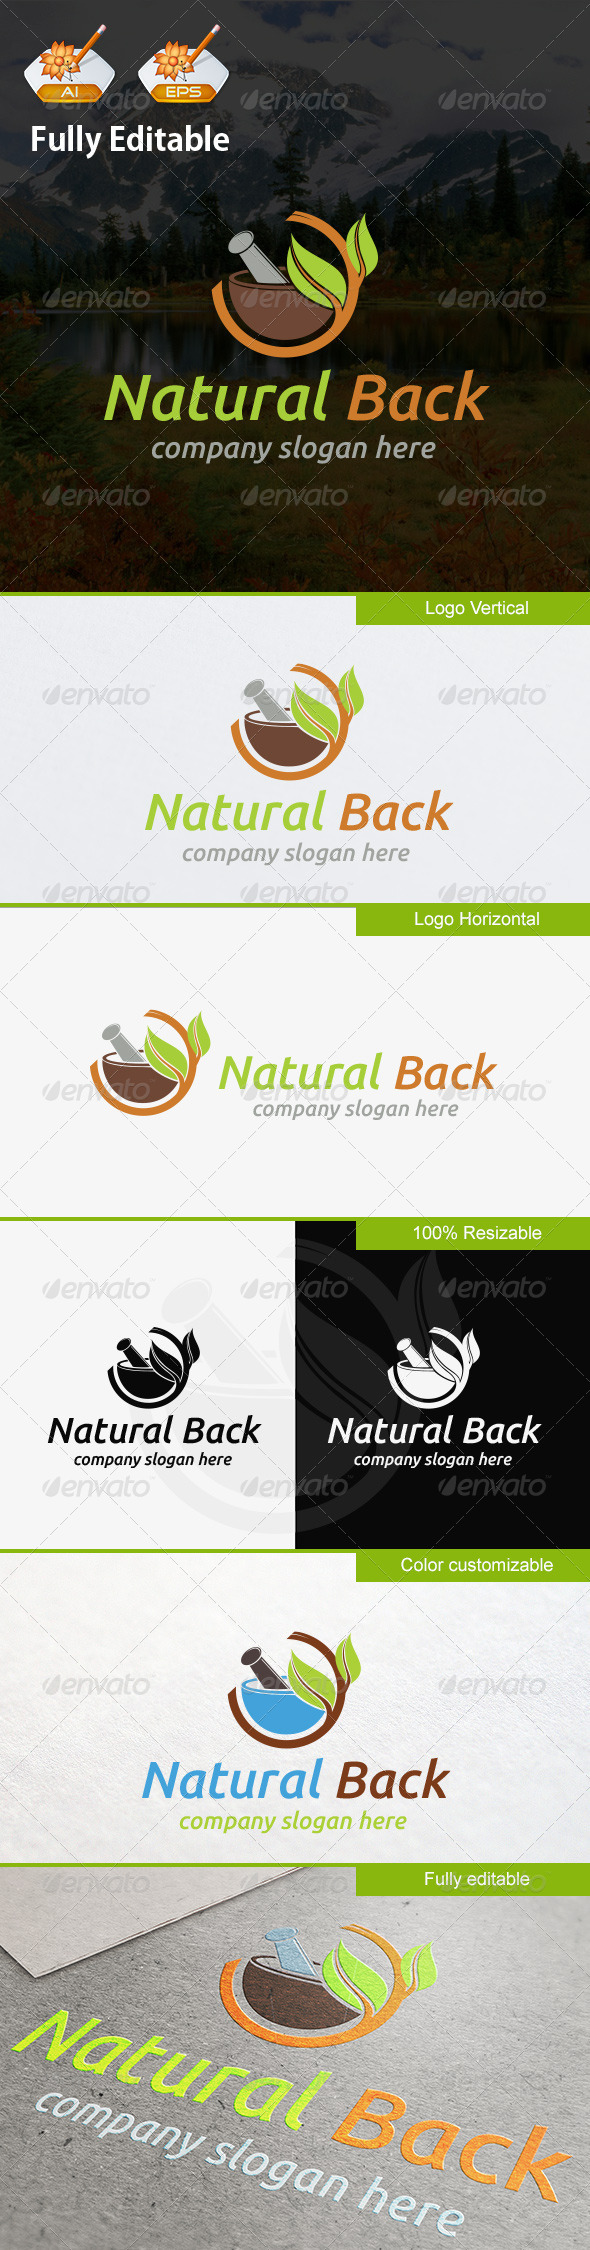 GraphicRiver Natural Back 8302326